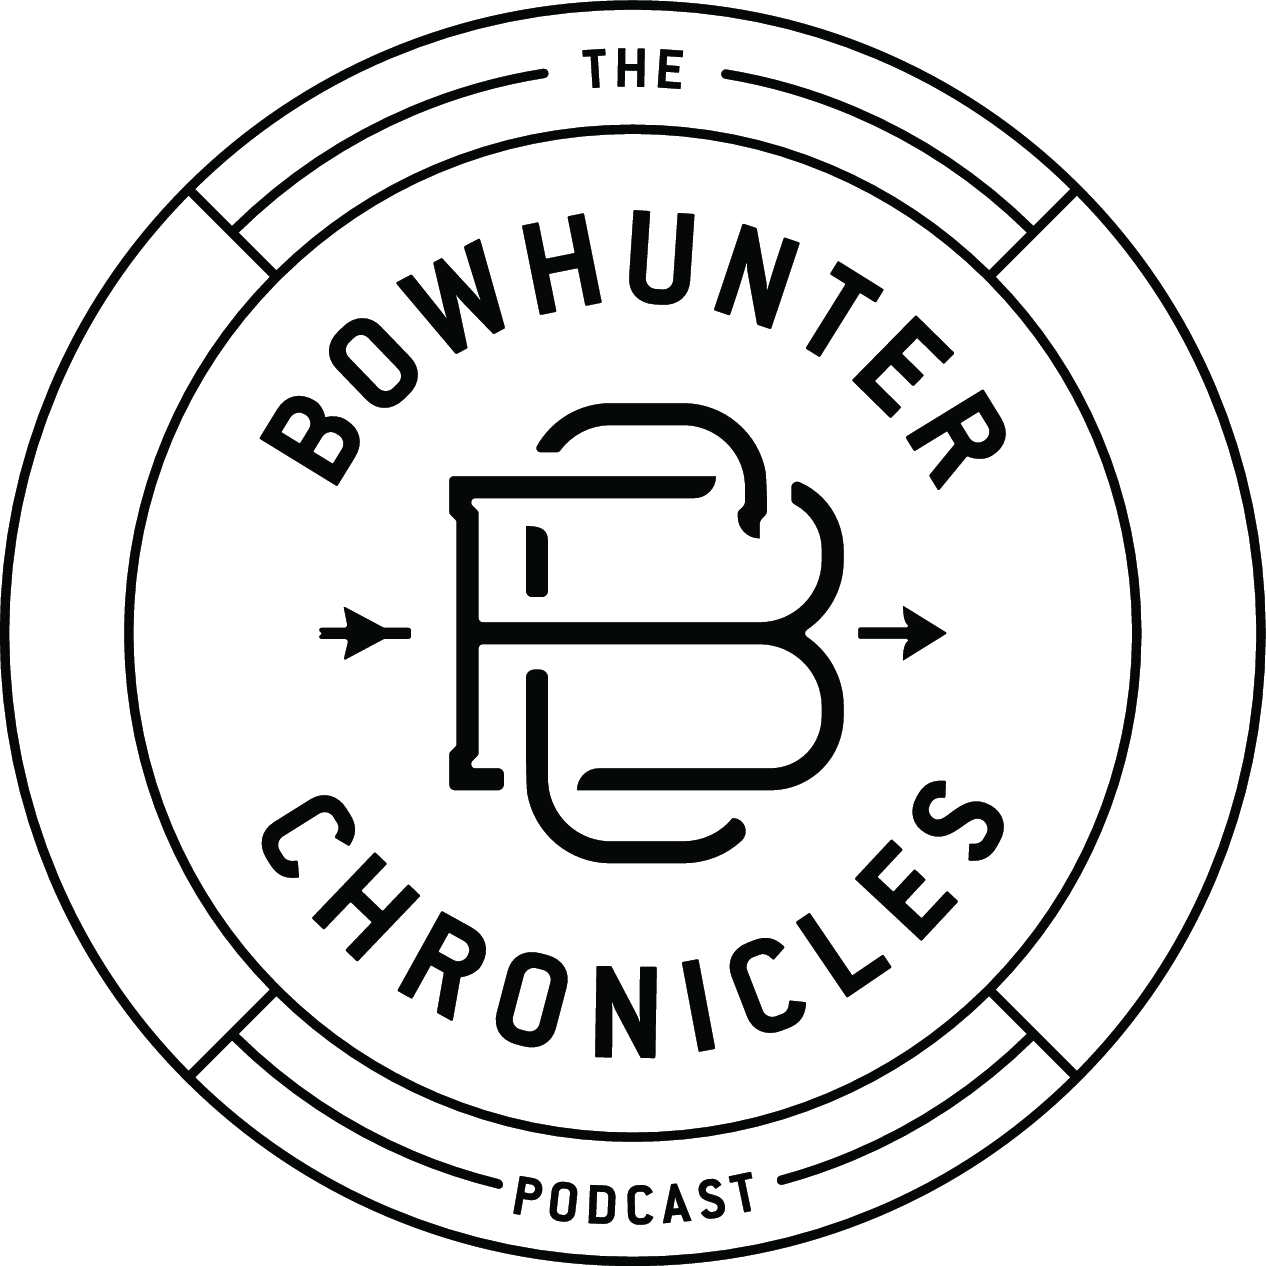 Bow Hunter CHRONICLES - I talked a little bit about what someone new to arrow tuning can do to get dialed in. I also compared notes with John on some arrow building/tuning ideas. These guys have a awesome podcast you really really need to check out all that they have to offer. Uncle Frank stories are well worth the price of admission.